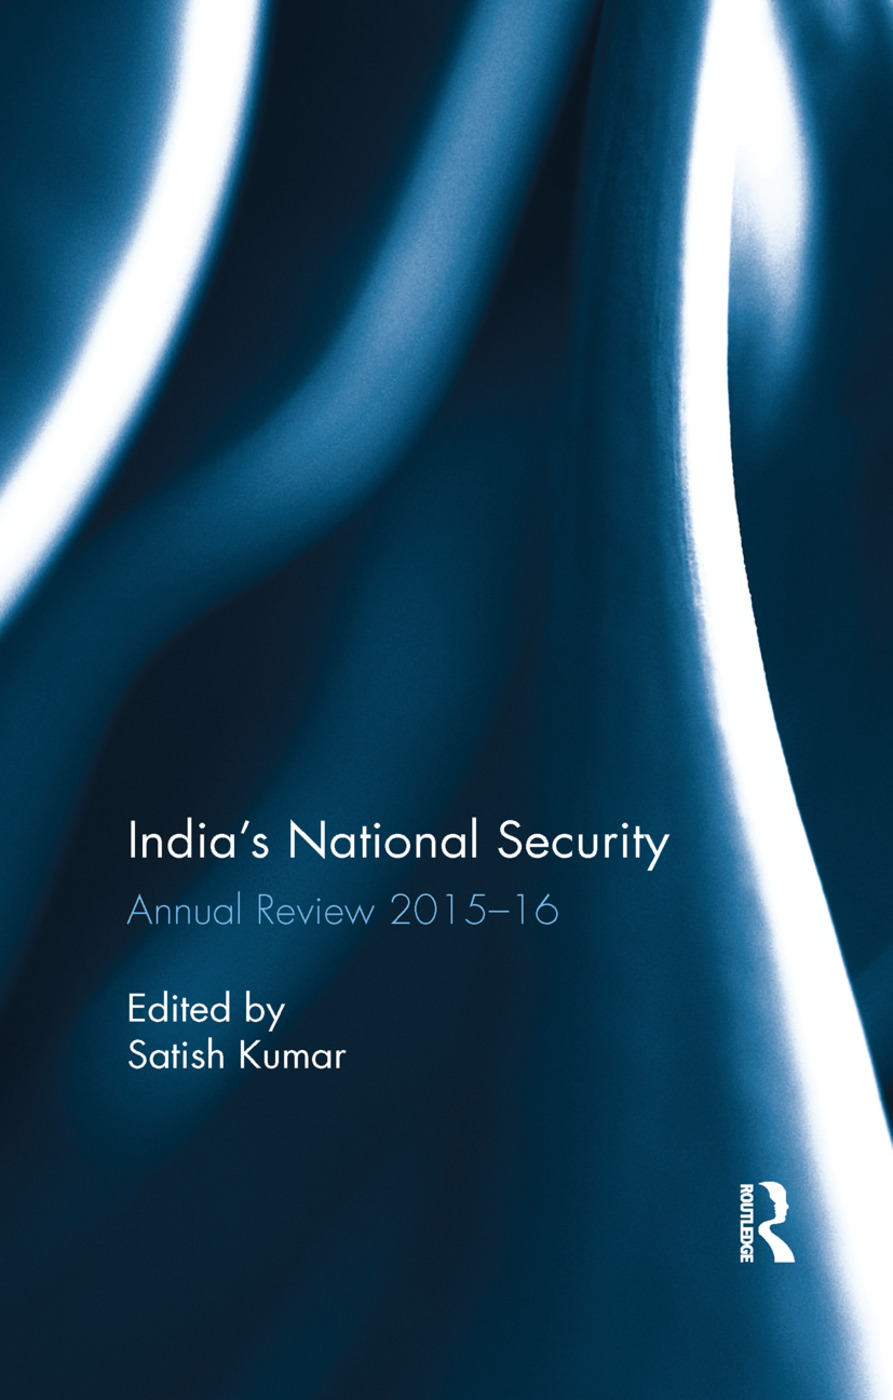 India's National Security: Annual Review 2015-16 book cover